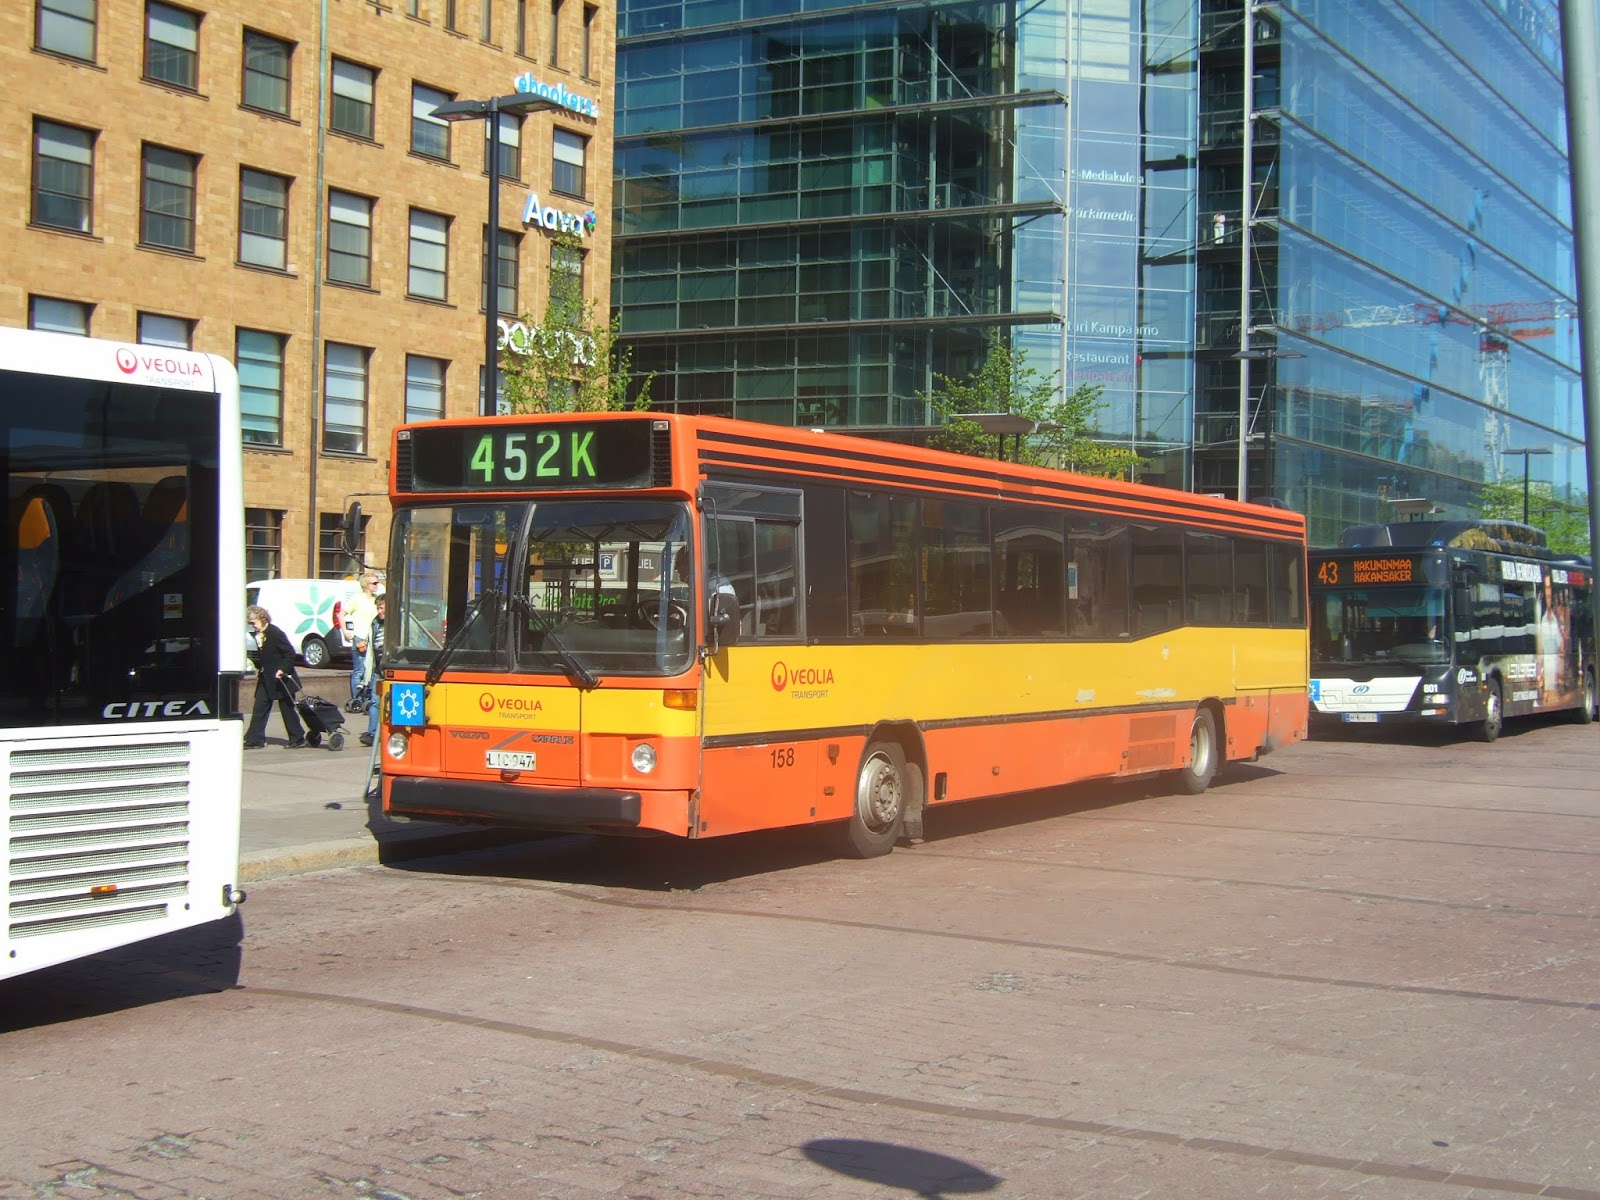 Steve's Bus & Train Page: Helsinki Special (And A Bit Of Barcelona)